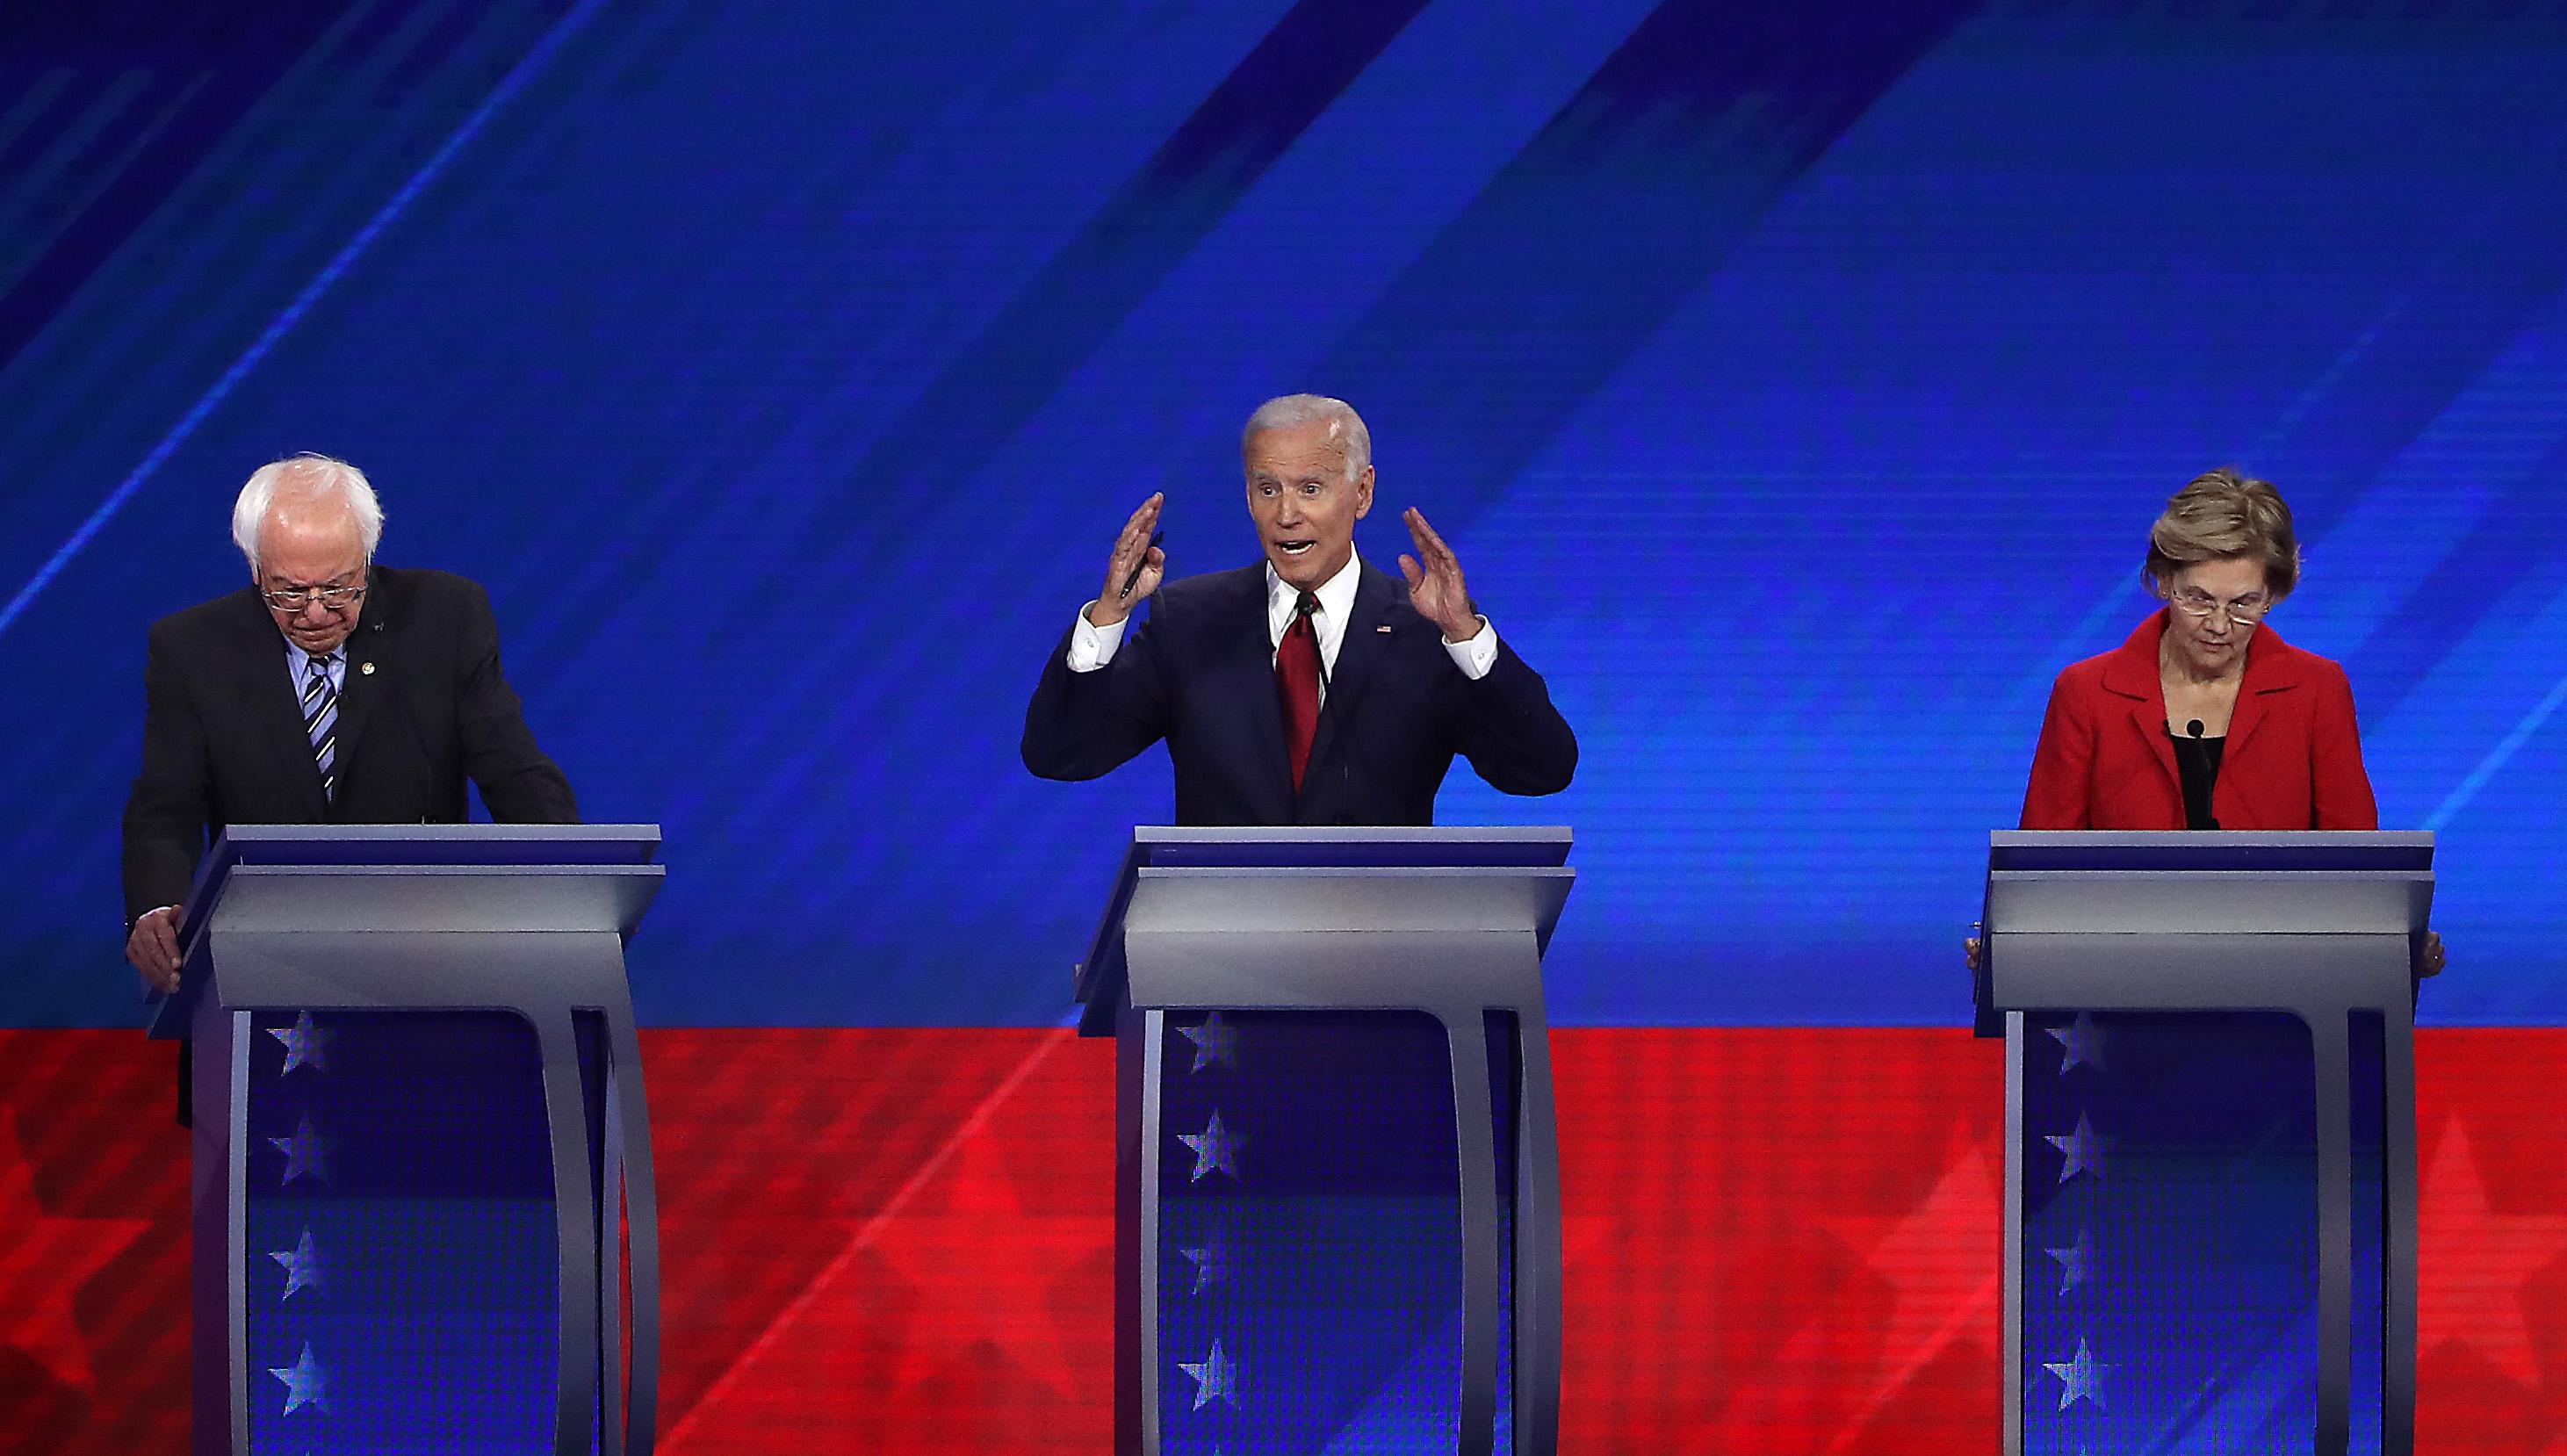 Biden, at the center podium, speaks with his hands up, while Sanders to his right and Warren to his left look down at their podiums.